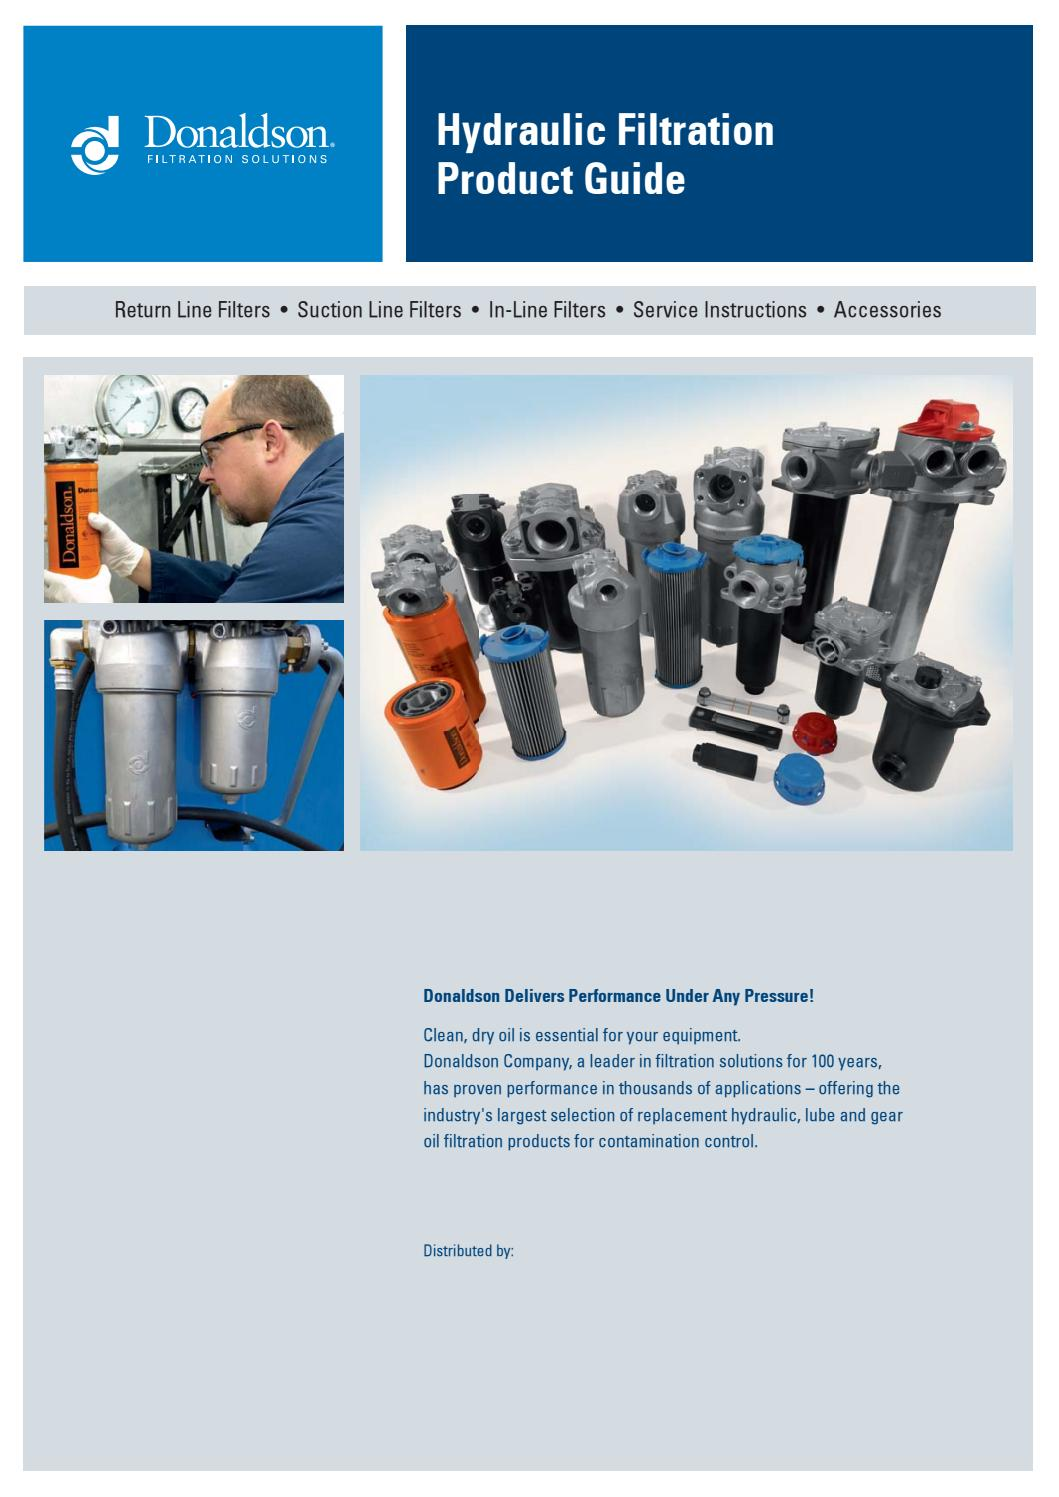 Hydraulic Filtration Product Guide by Danitech A/S - issuu